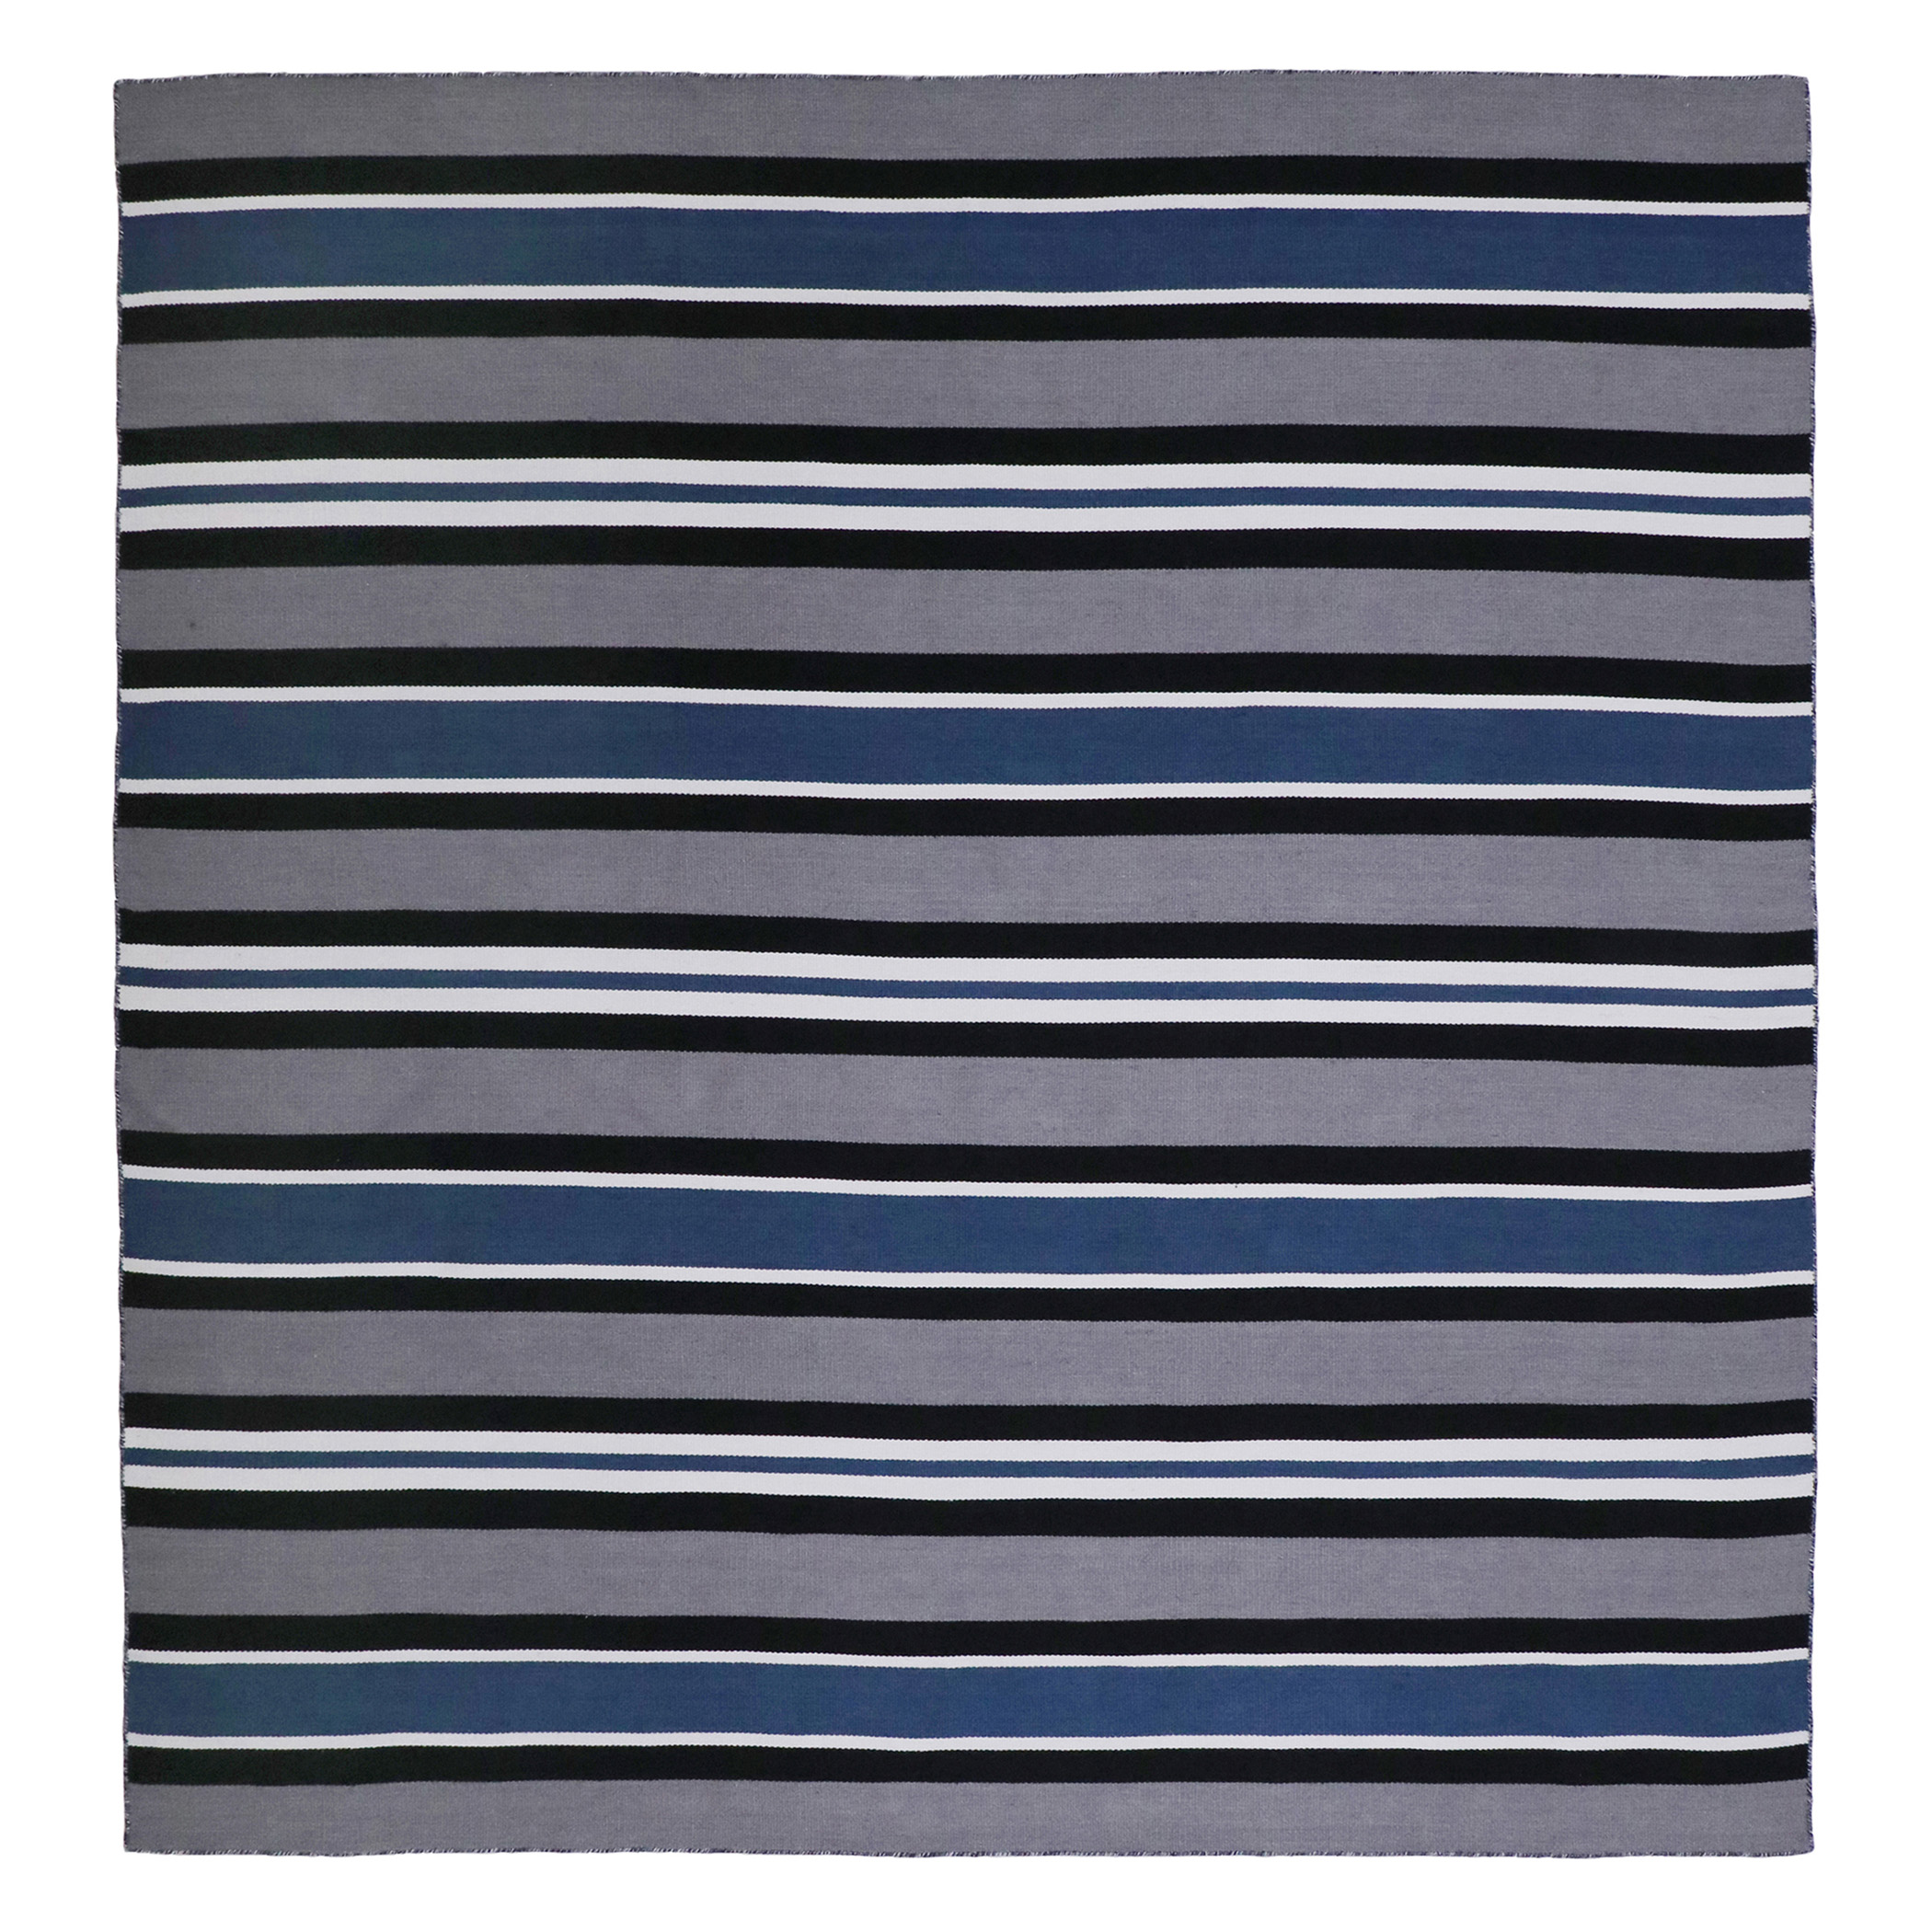 Variagated Stripe Outdoor Rug - Navy